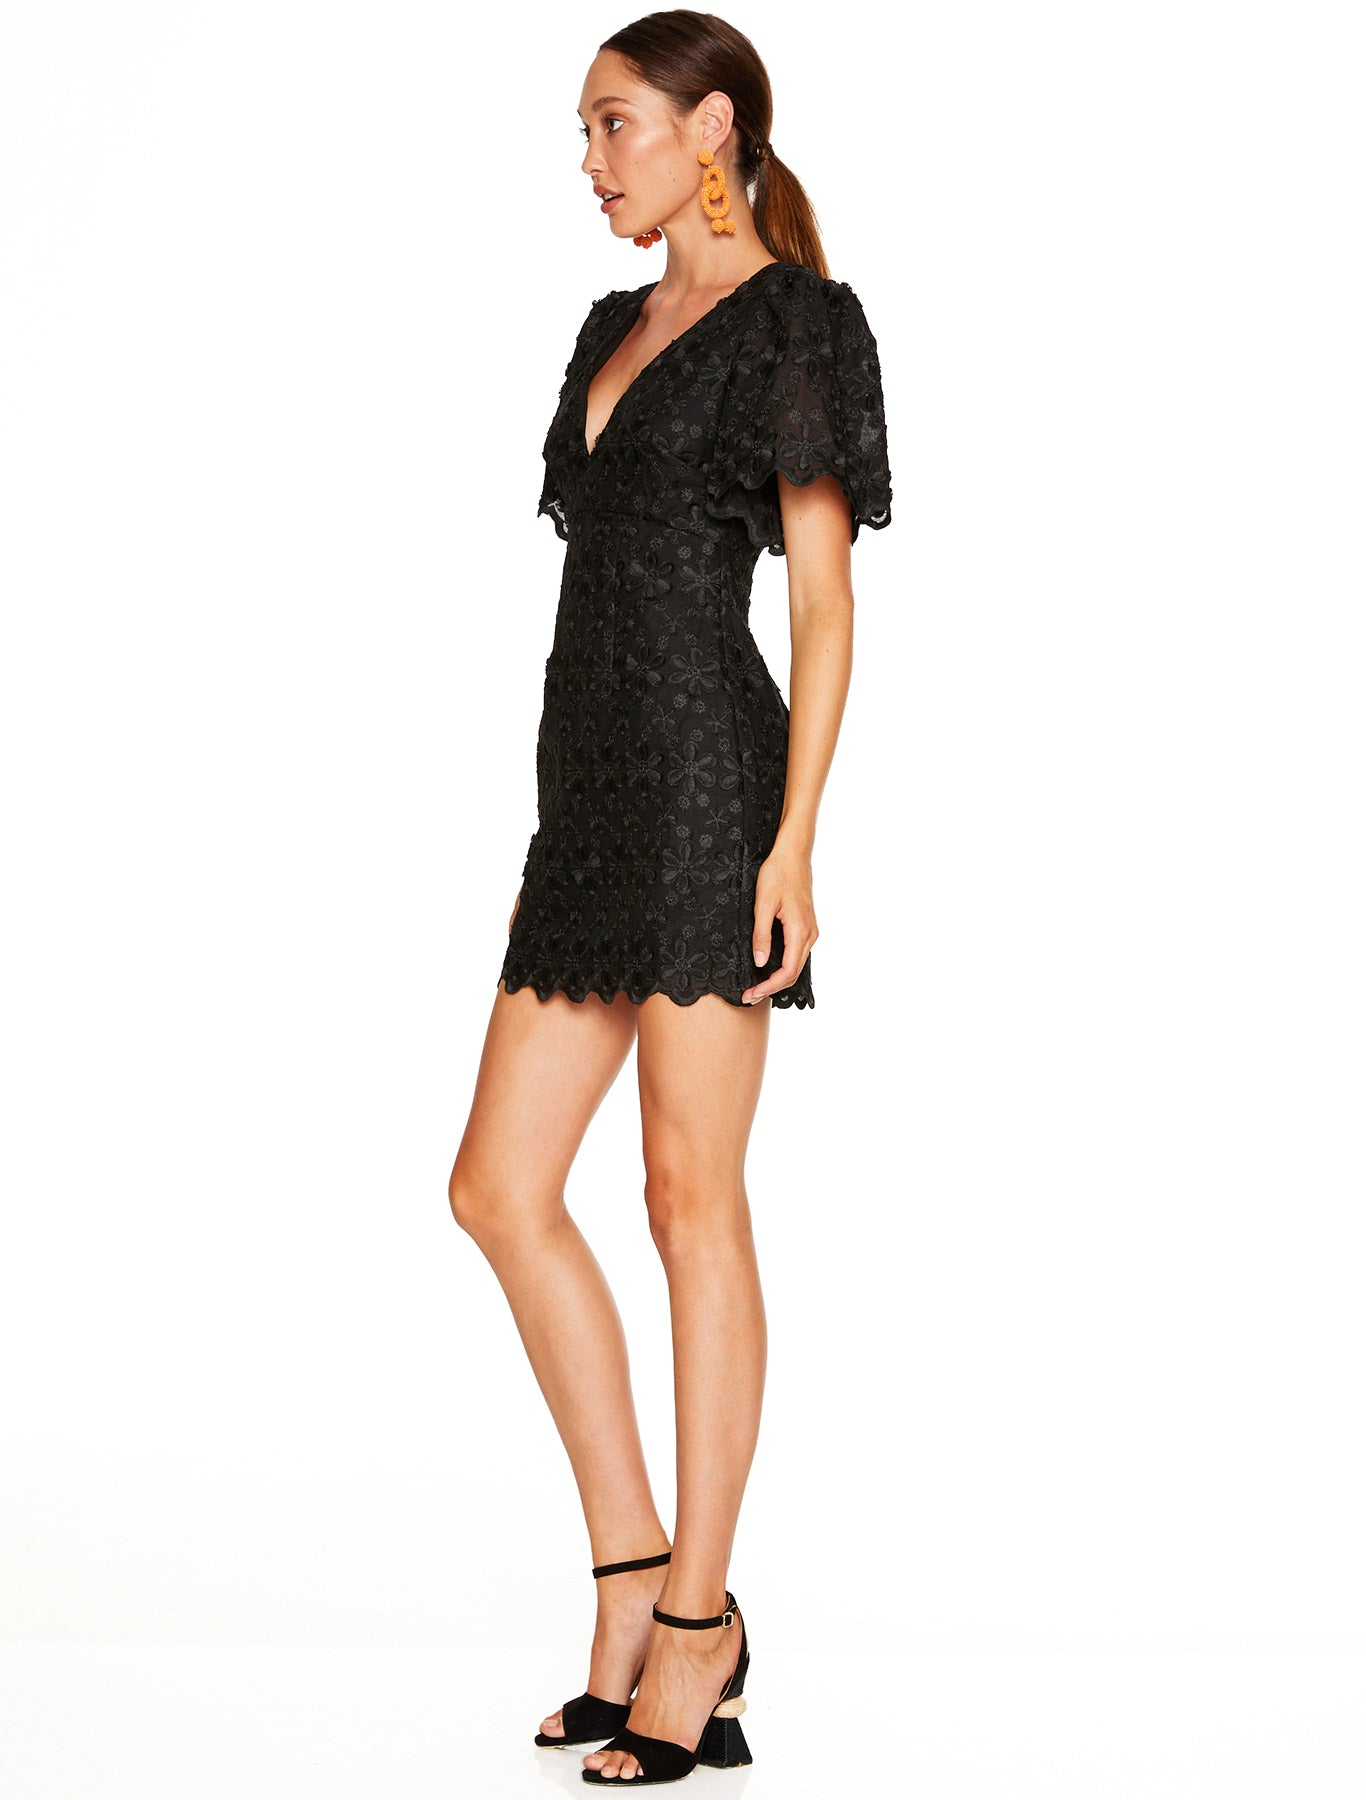 LIMOUSINE MINI DRESS